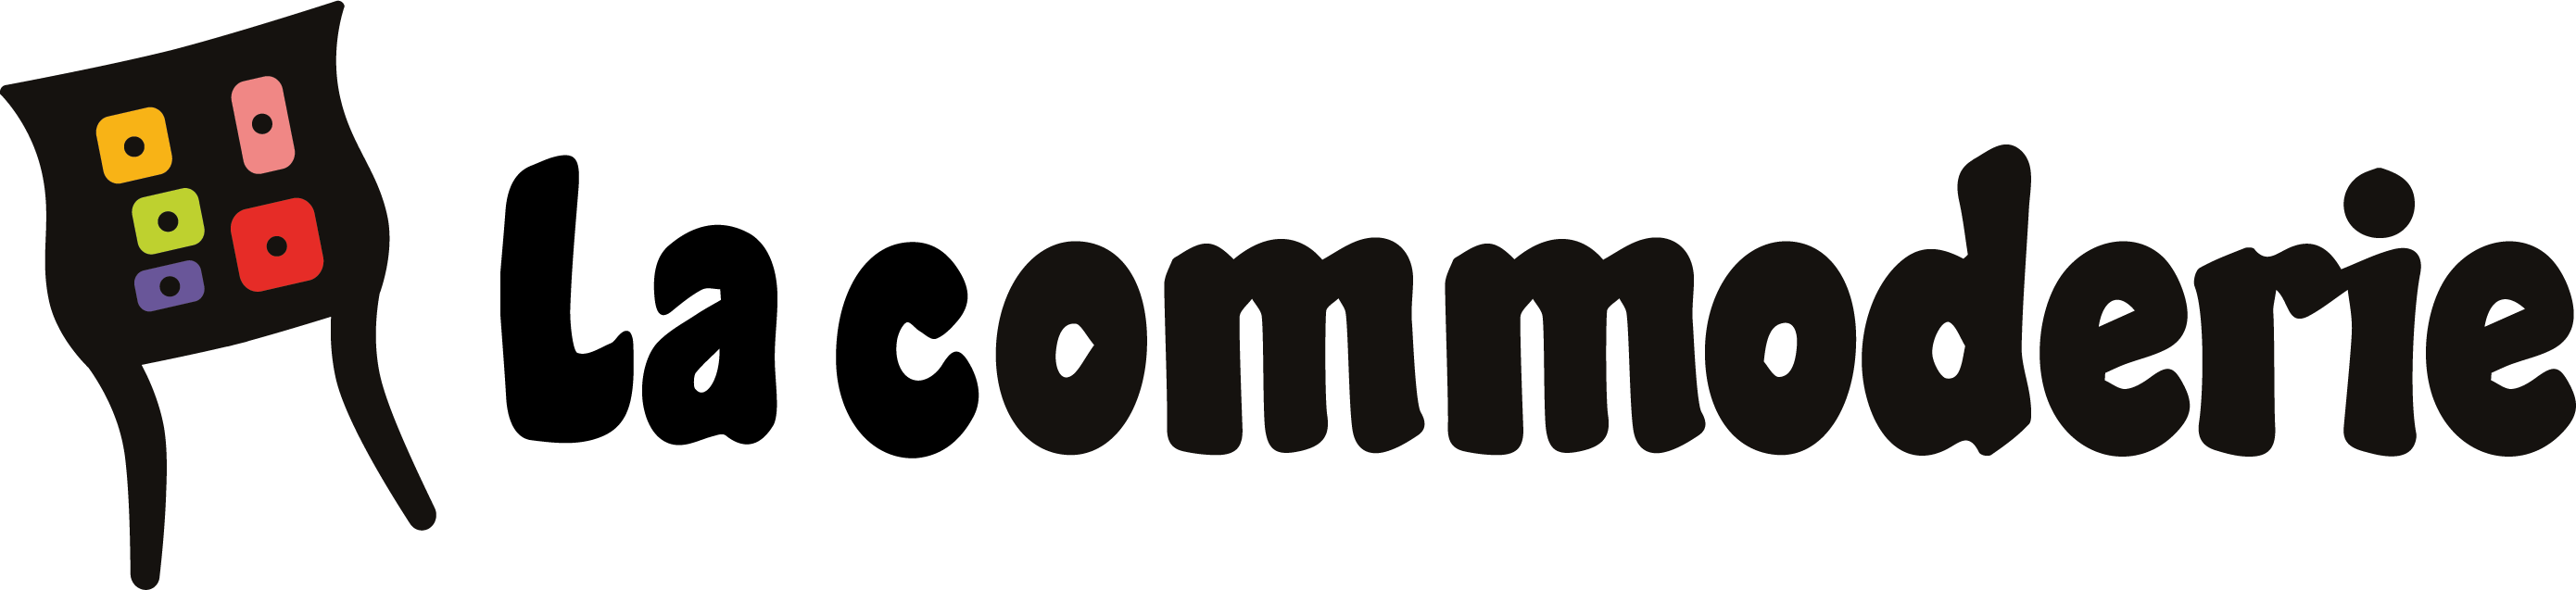 Logotype la commoderie long